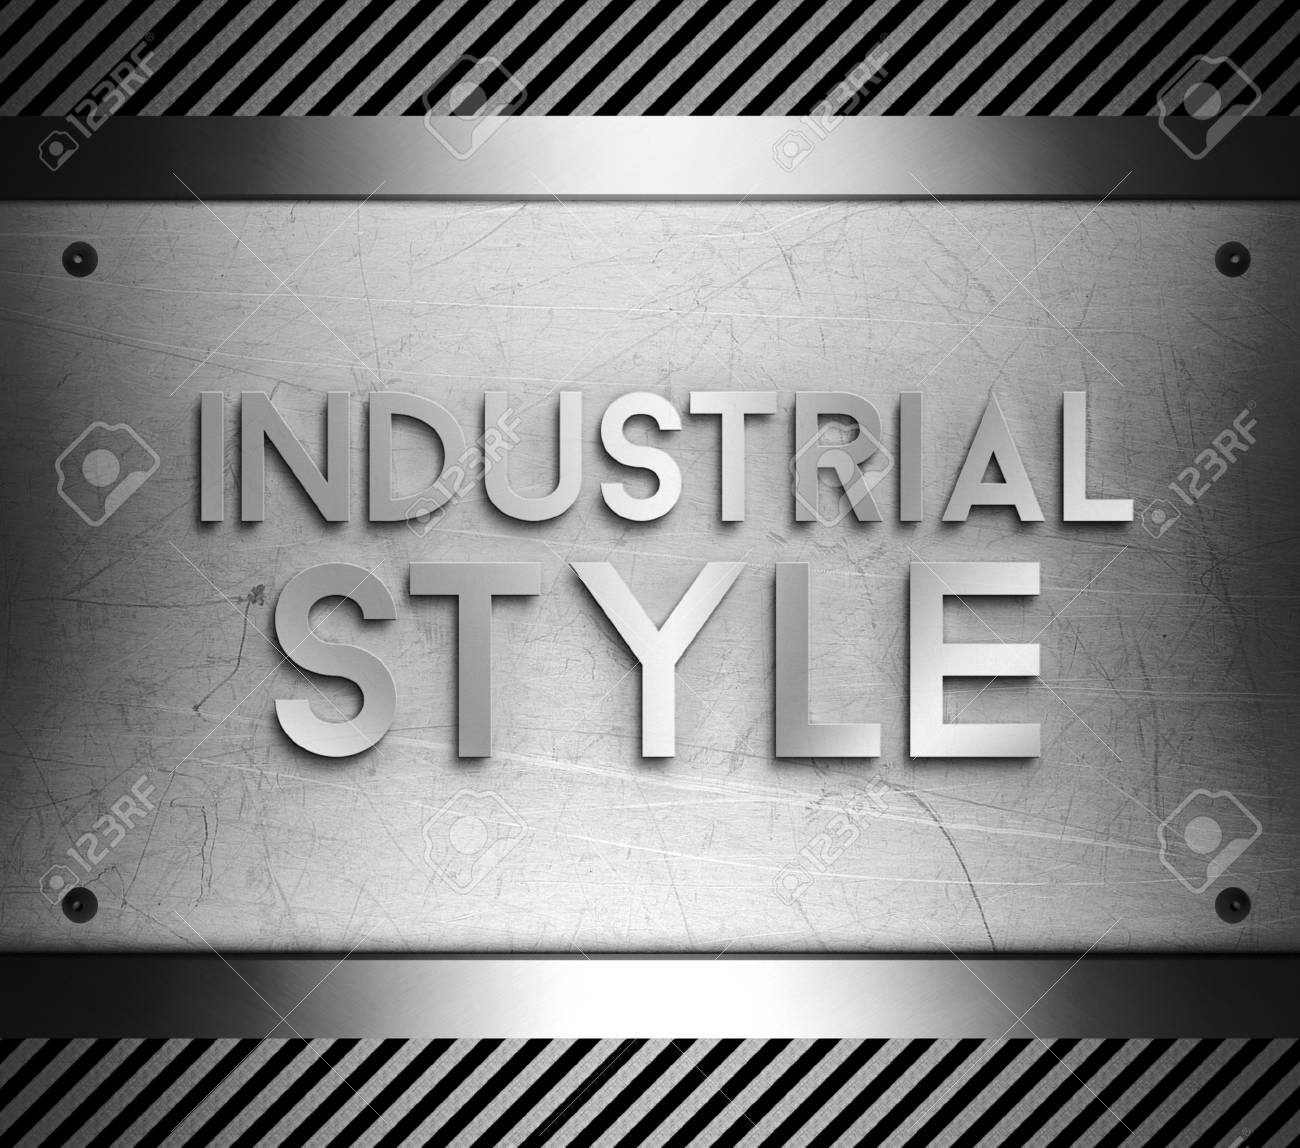 Industrial Style Concept On Steel Plate Background Stock Photo